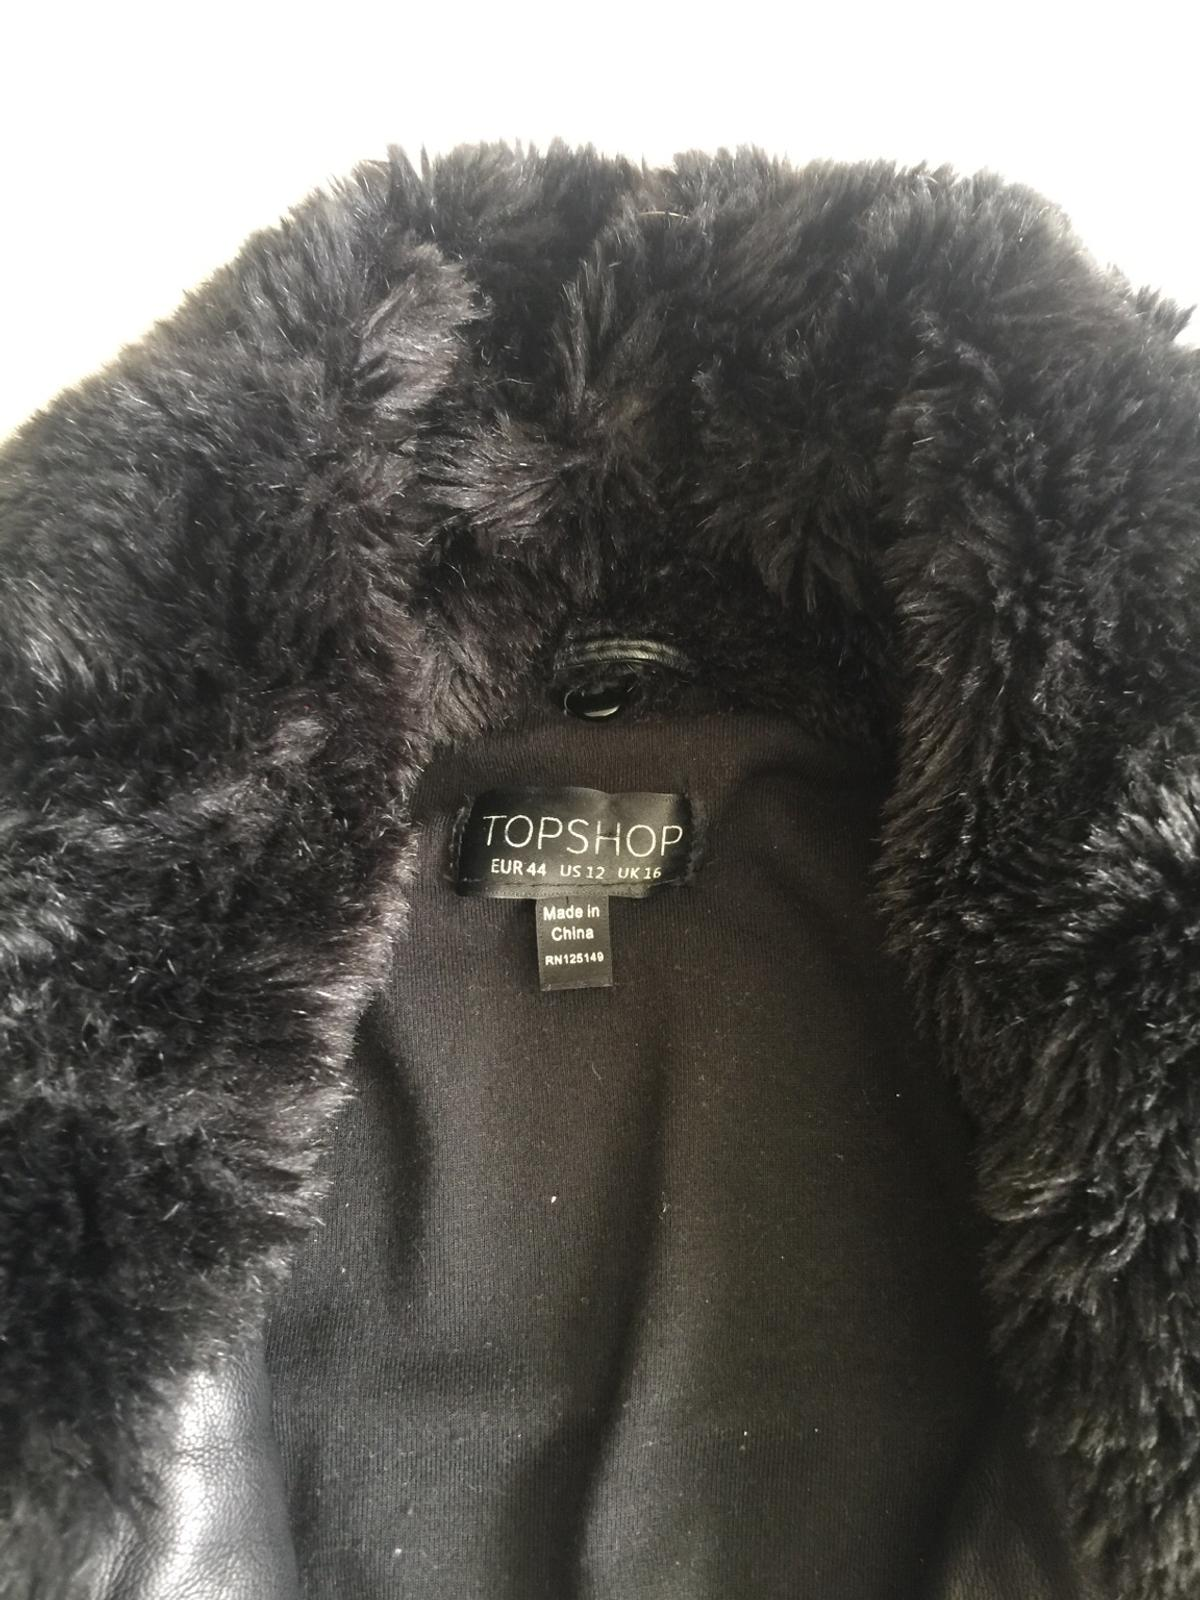 Leather jacket ( not real leather) short jacket . With detachable fur . Very good condition. Size 16 from top shop